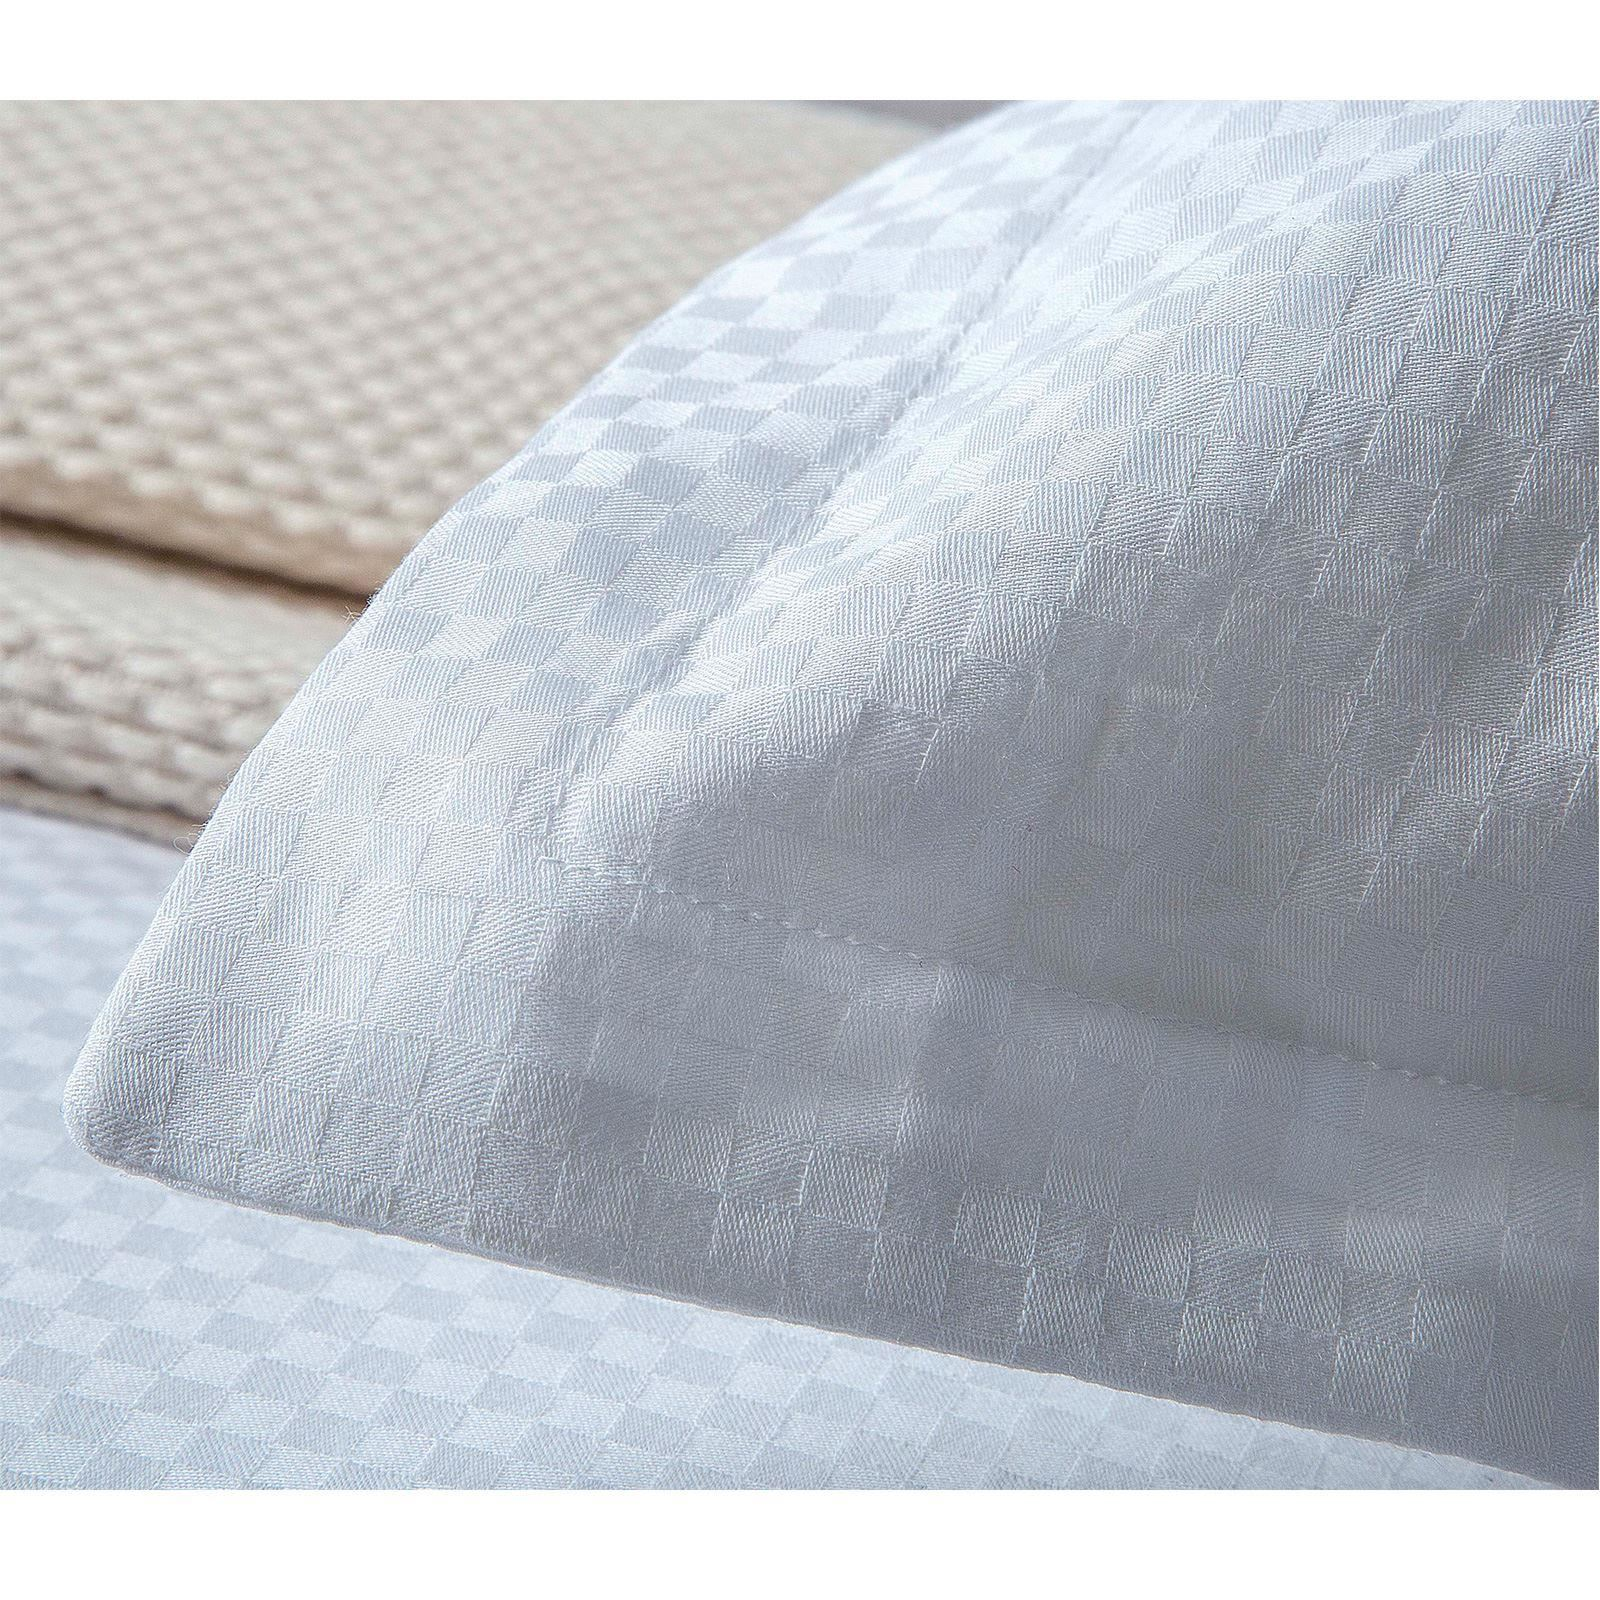 Deluxe Hotel Quality Check Checked 100/%Egyptian Cotton Satin Duvet Cover Bedding